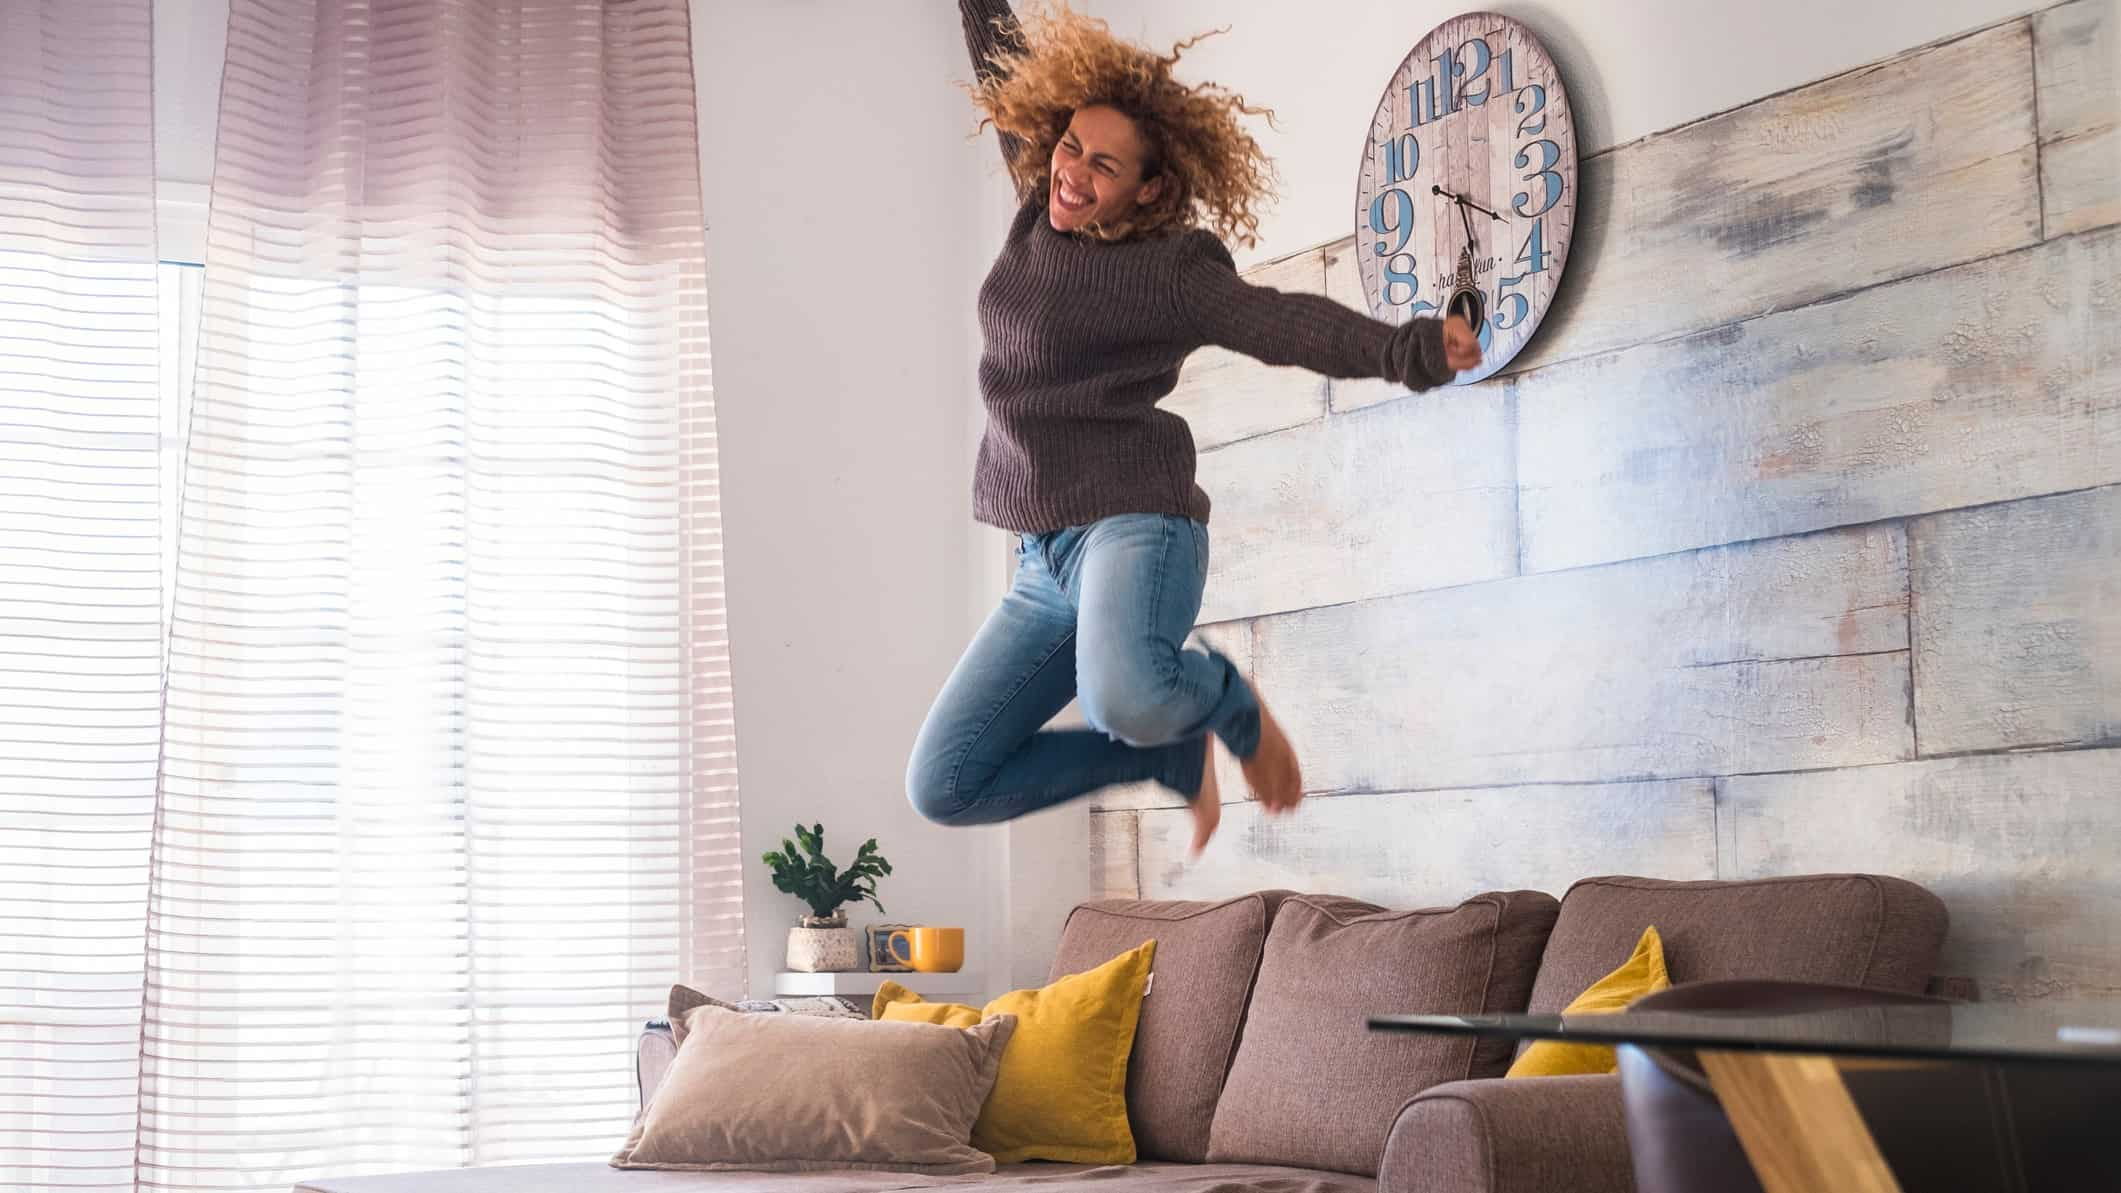 surging asx ecommerce share price represented by woman jumping off sofa in excitement